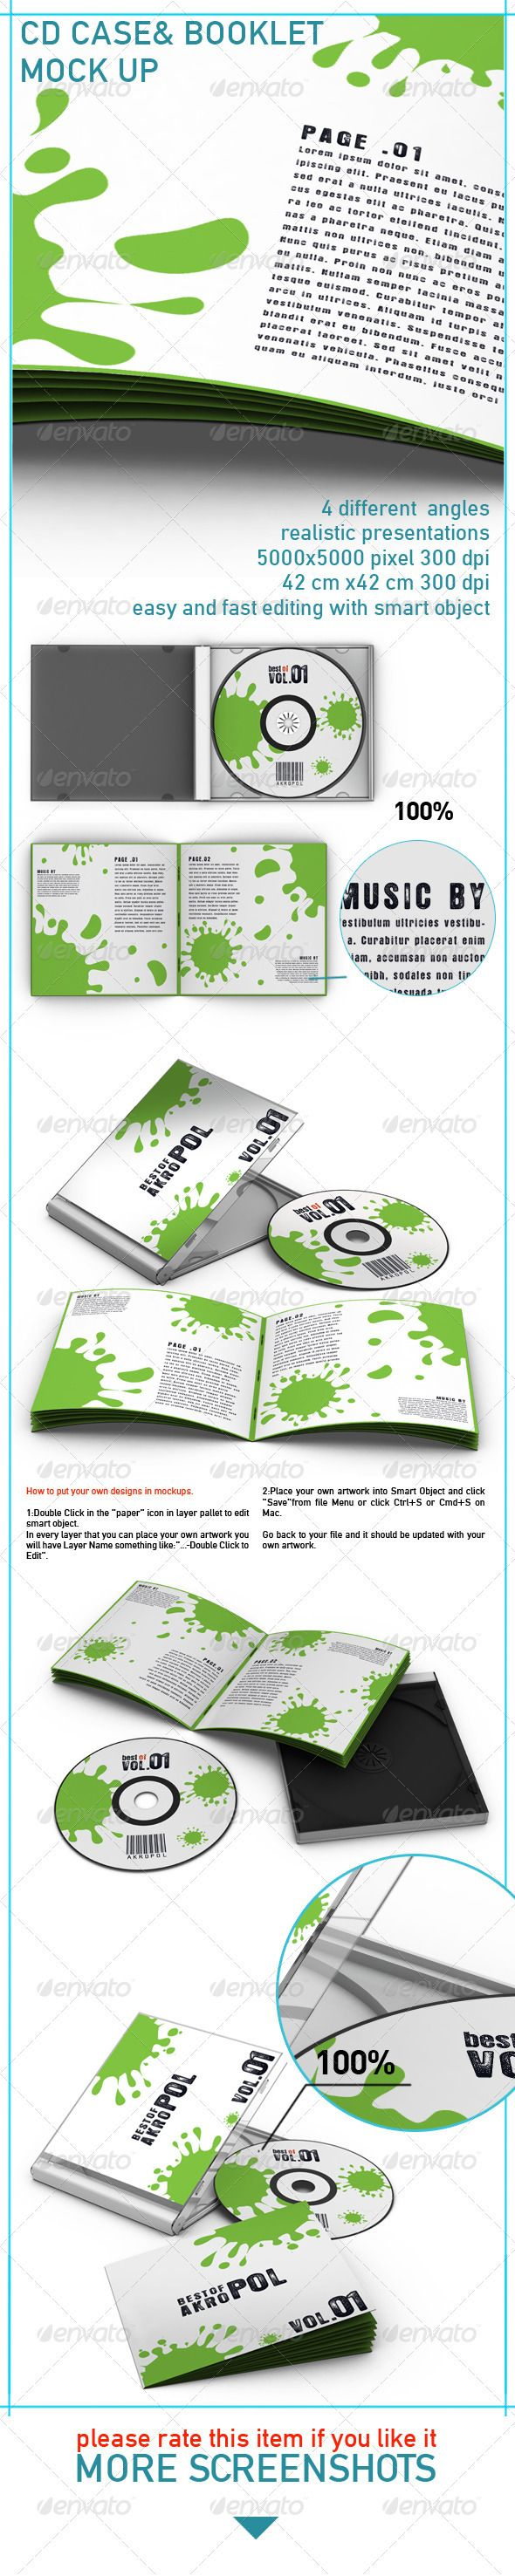 Cd Mock Up  #GraphicRiver         Cd Mock Up 42 cm x 42 cm 300 Dpi 5000×5000 pixel font: .dafont /hotel-coral-essex.font     Created: 27September12 GraphicsFilesIncluded: PhotoshopPSD HighResolution: No Layered: Yes MinimumAdobeCSVersion: CS4 PixelDimensions: 5000x5000 PrintDimensions: 16.6x16.6 Tags: brochure #case #cd #compact #cover #design #disk #dvd #editable #jewelcase #mockup #music #packaging #photoshop #presentation #psd #smartobject #template